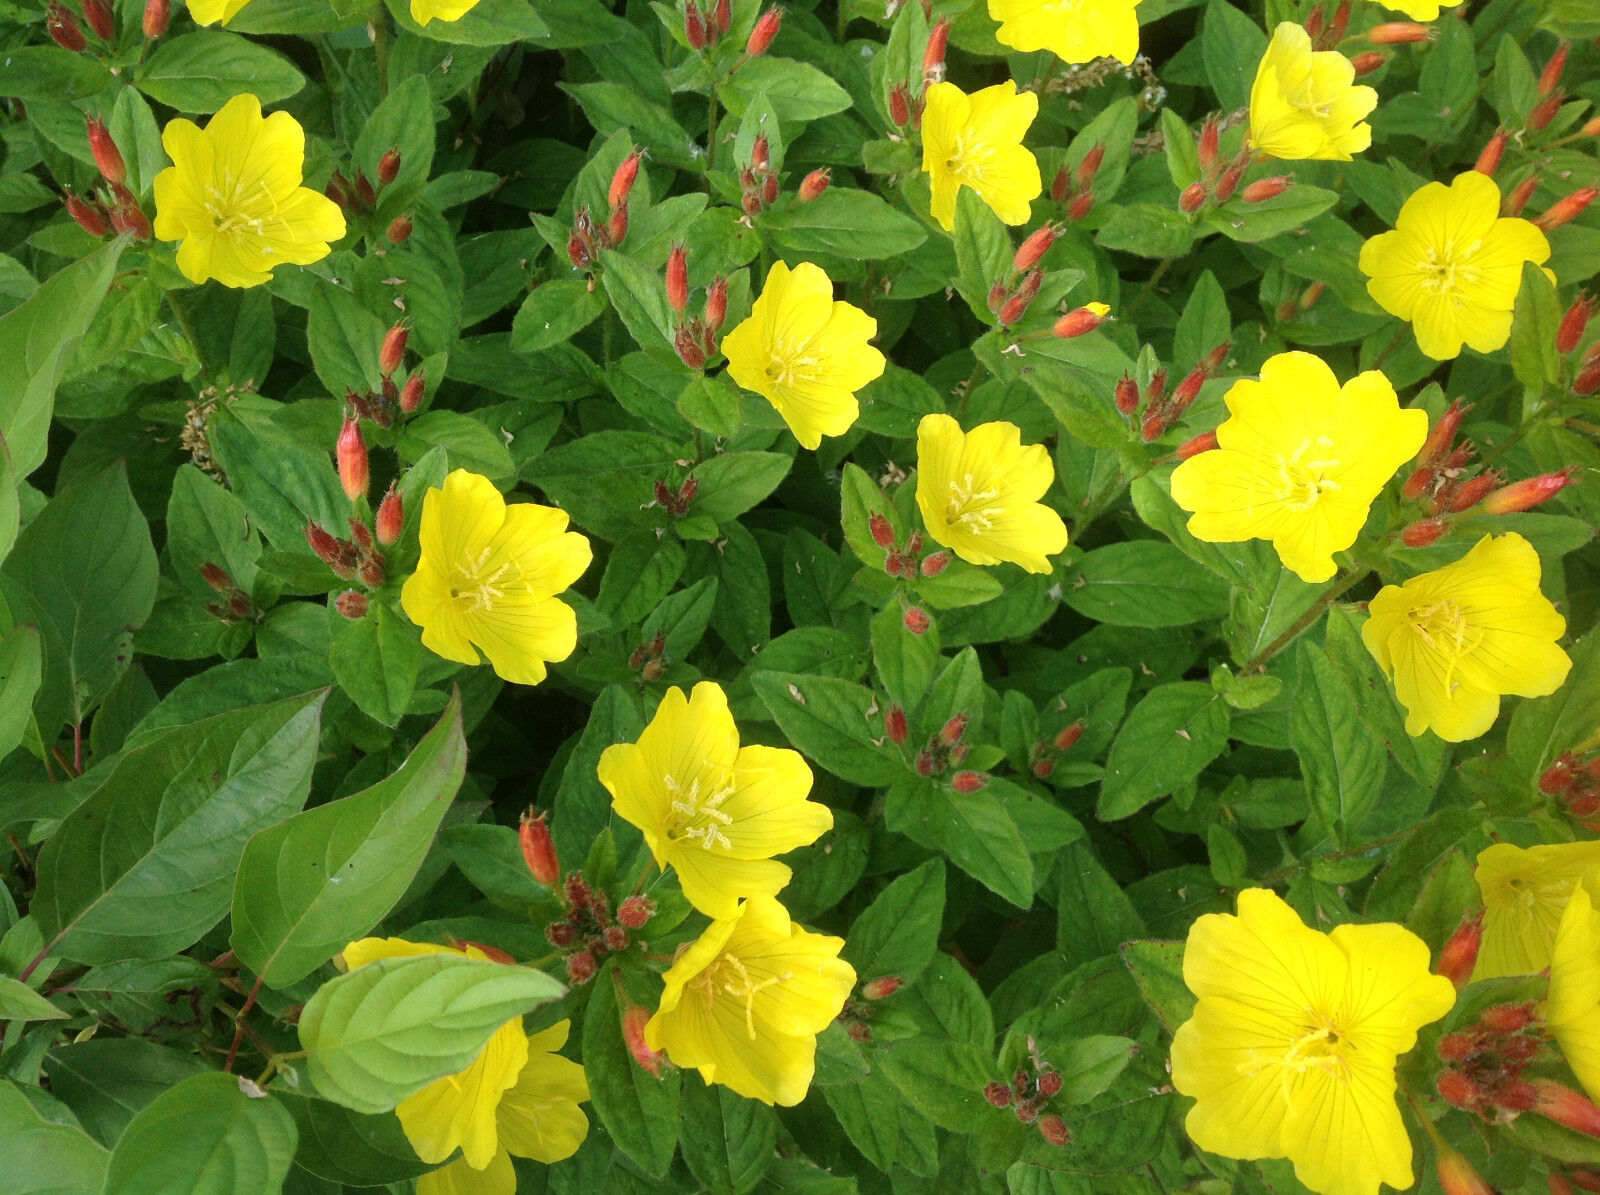 12 Easy To Grow Perennial Sundrops Primrose 12 Plants Yellow